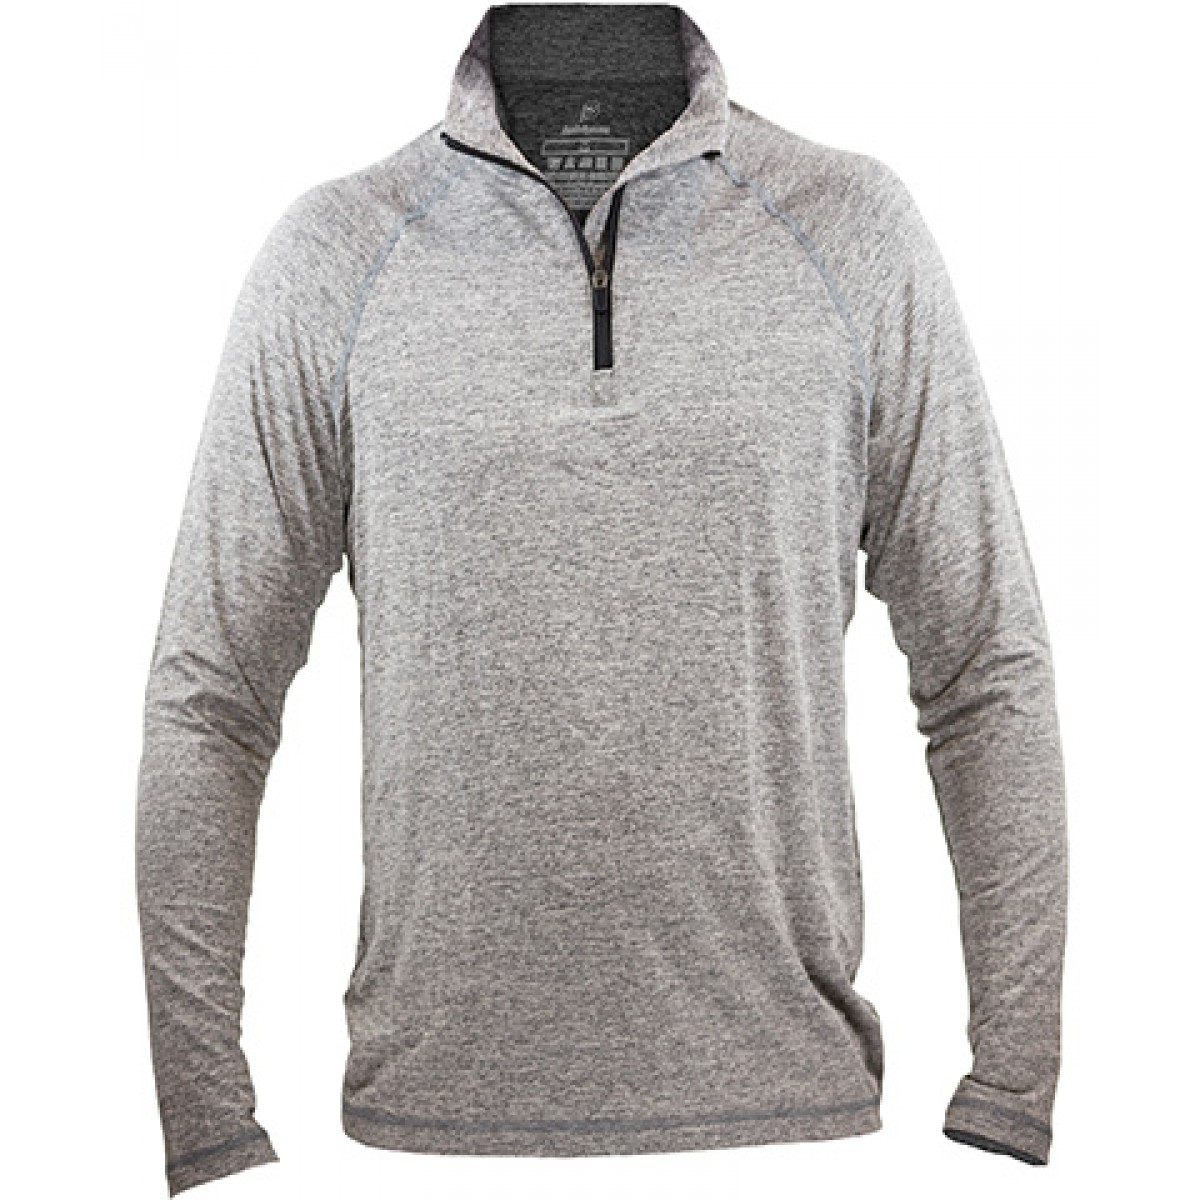 Fine Designs Blend 1/4-Zip Pullover-Gray -2XL